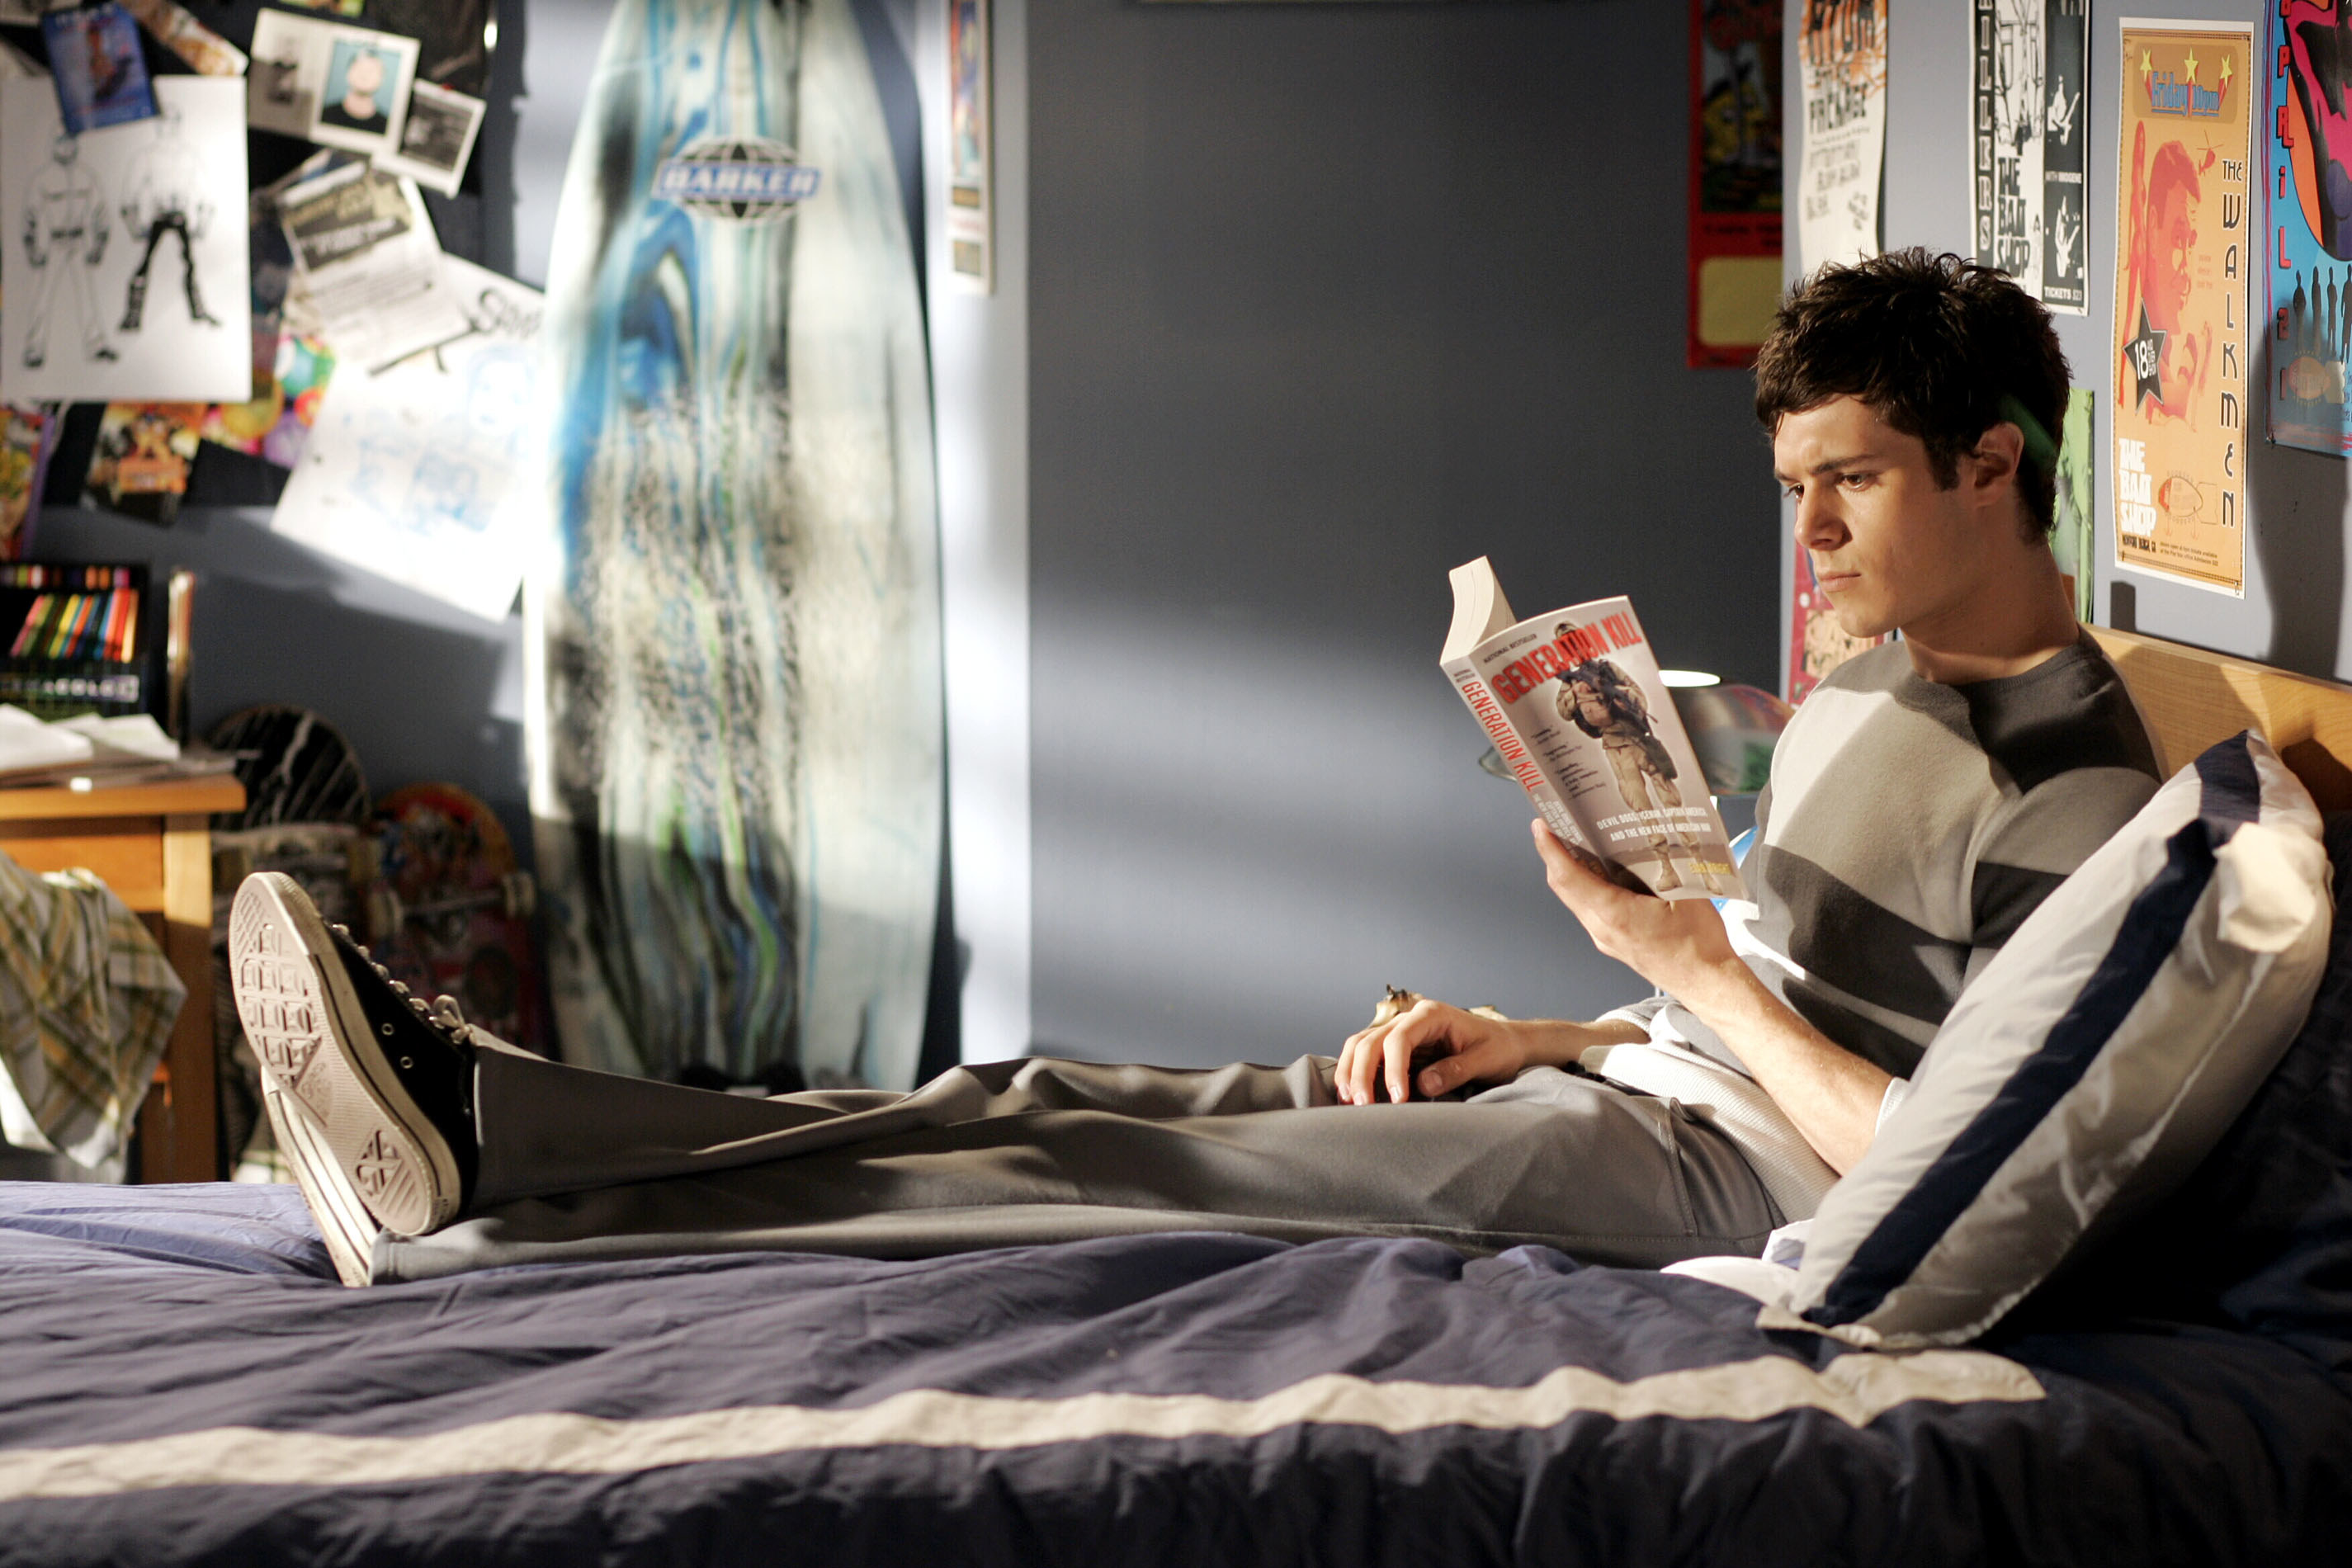 Brody sits on a bed while reading a graphic novel